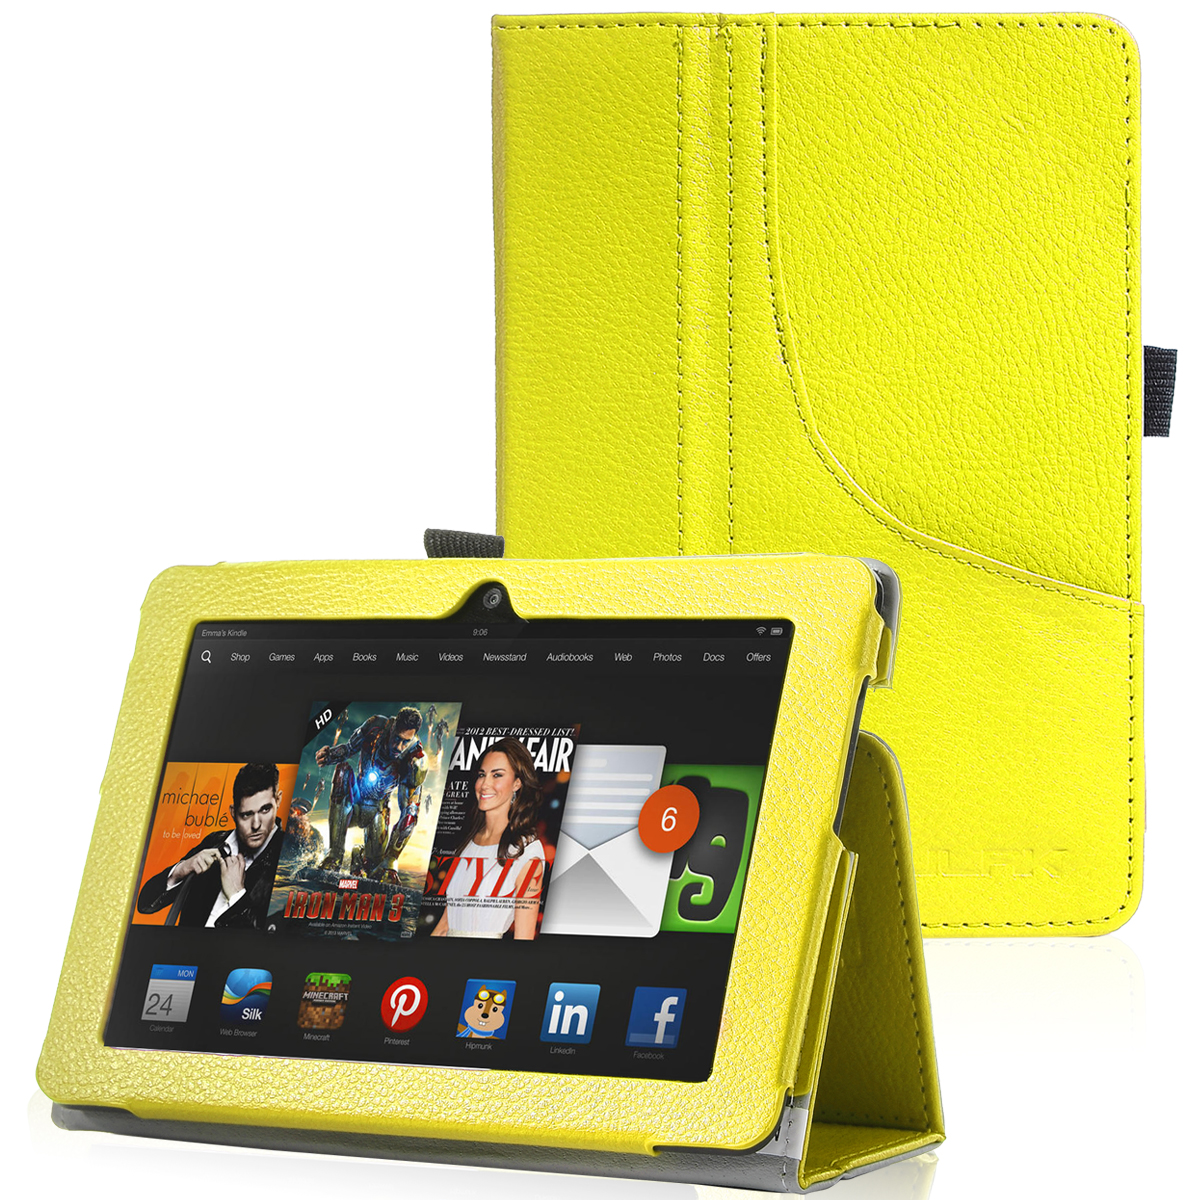 ULAK PU Leather Folio Stand Case Cover for Amazon Kindle Fire HDX 7 Inch 2013 Release with Auto Sleep/Wake Feature, Orange